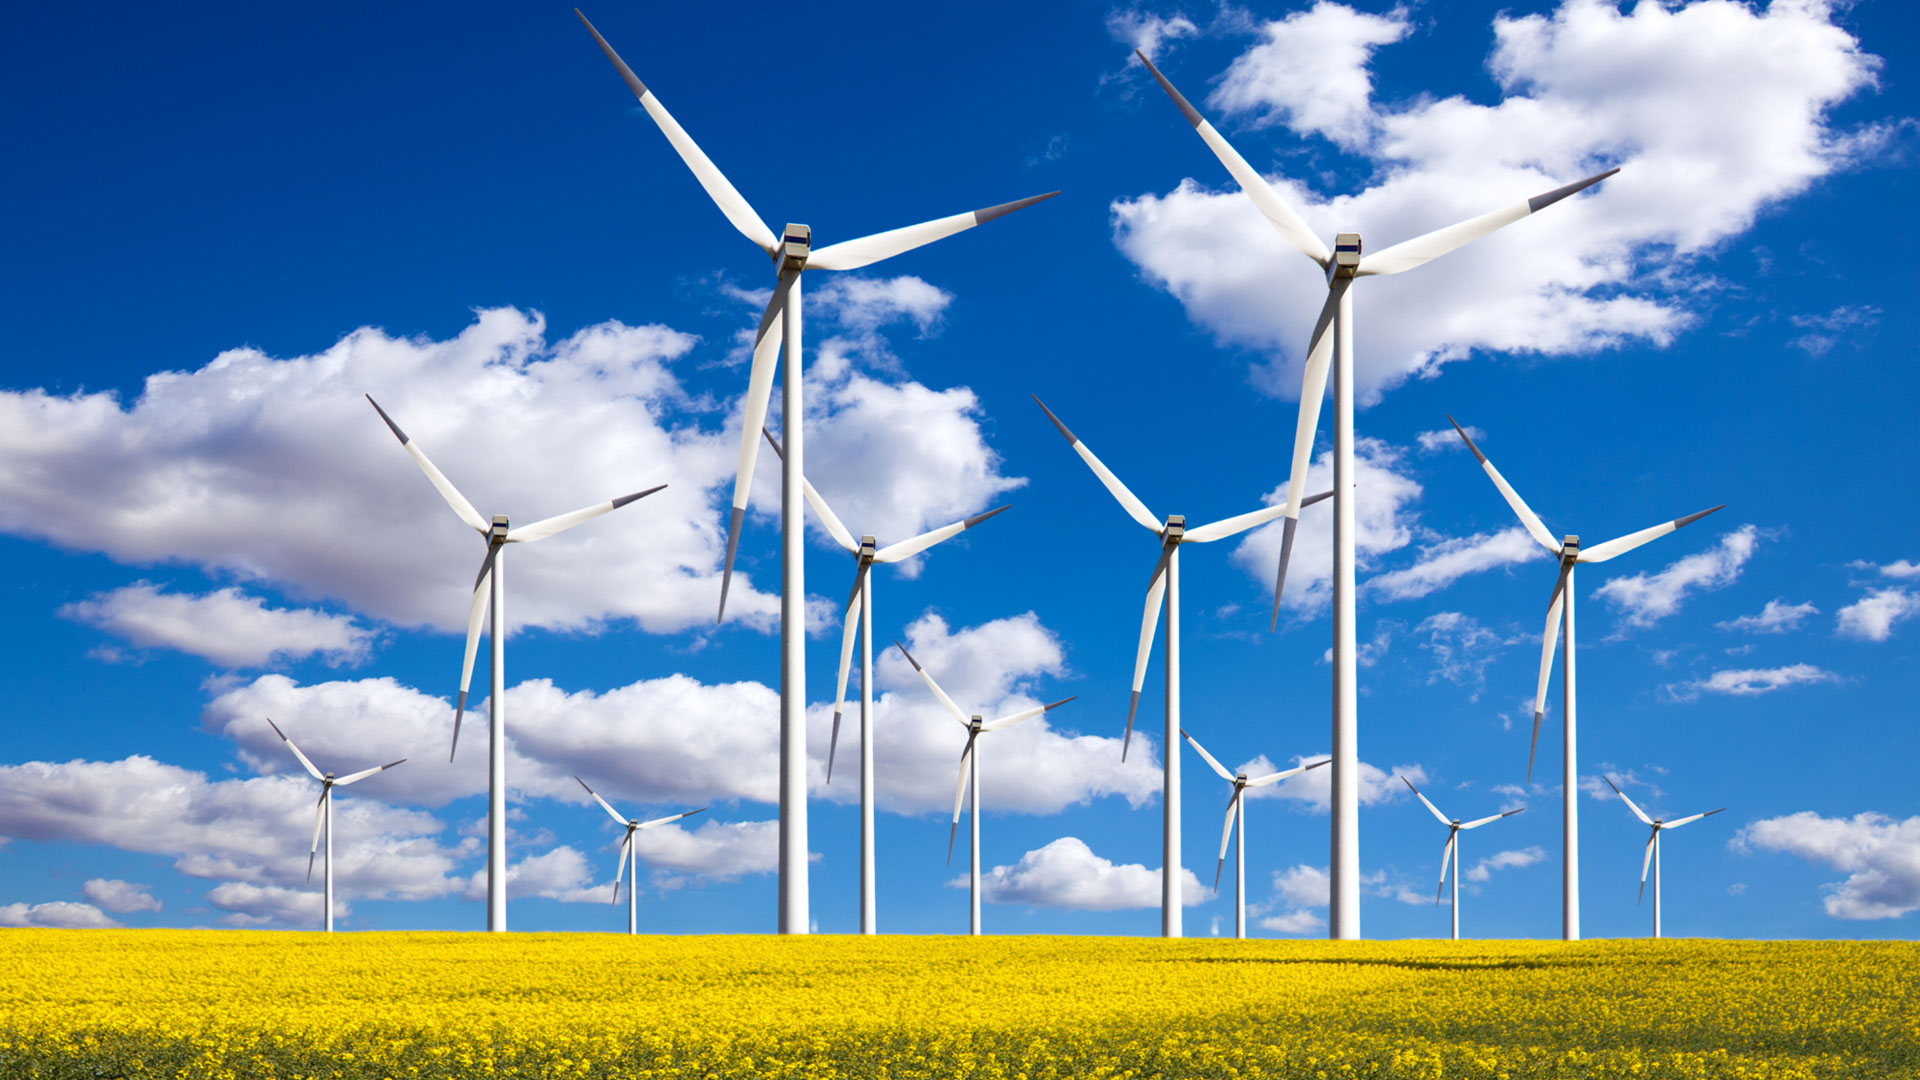 Get Out Of The Red And Try These Green Energy Tips